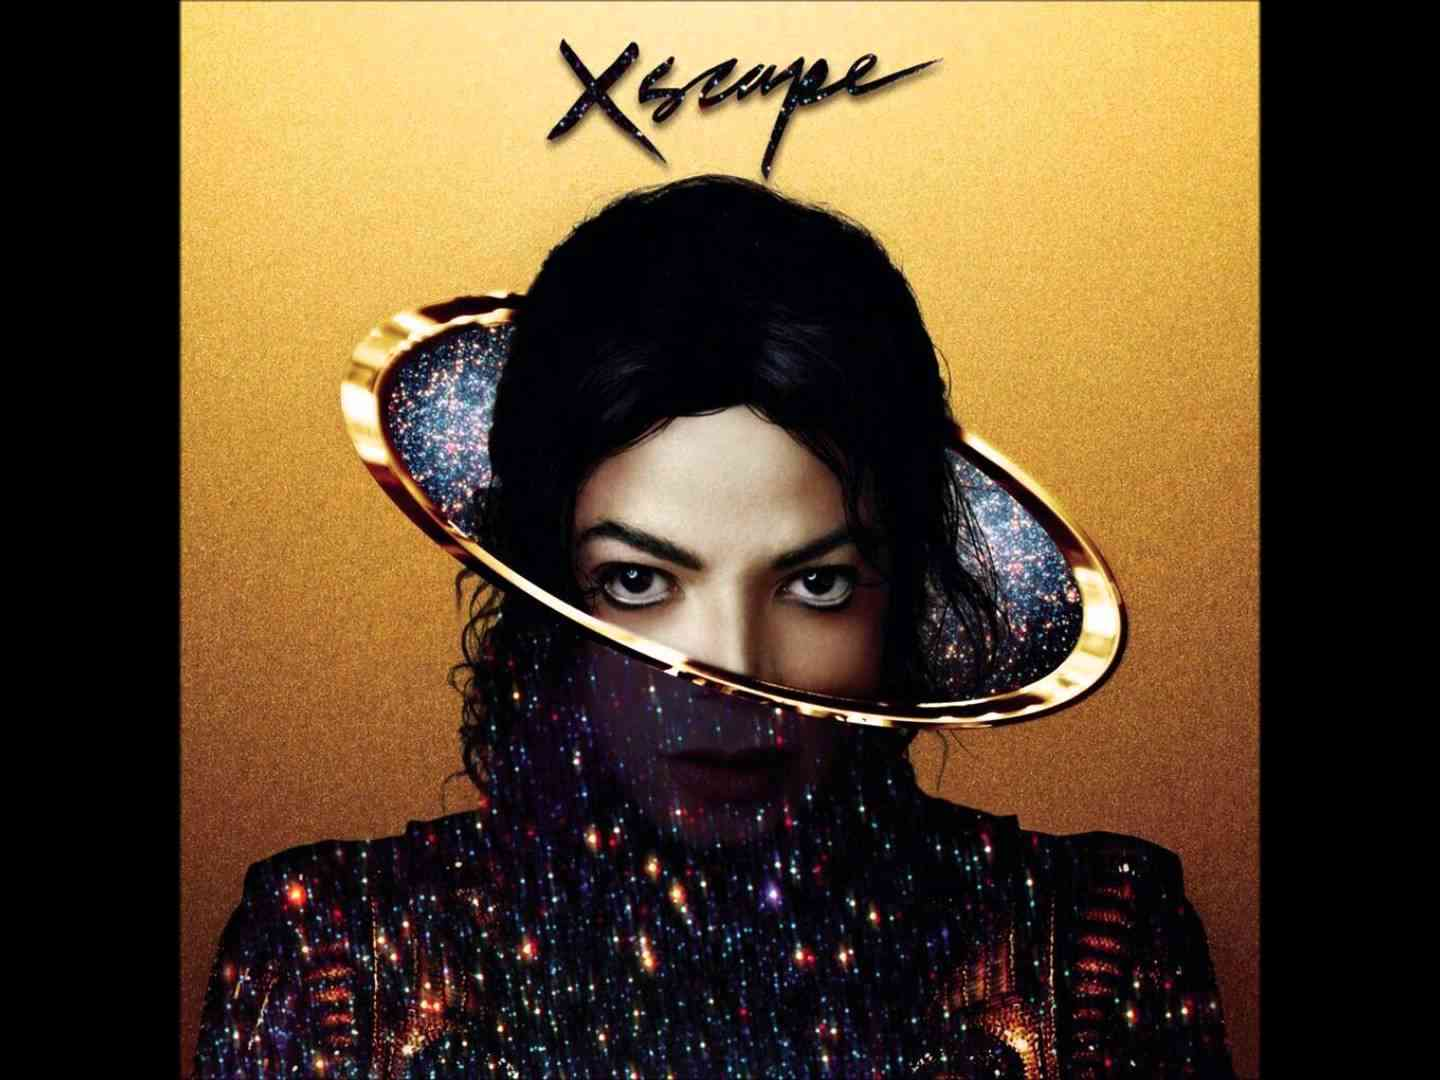 A Place With No Name (Original Version)- Michael Jackson XSCAPE (Deluxe) - YouTube